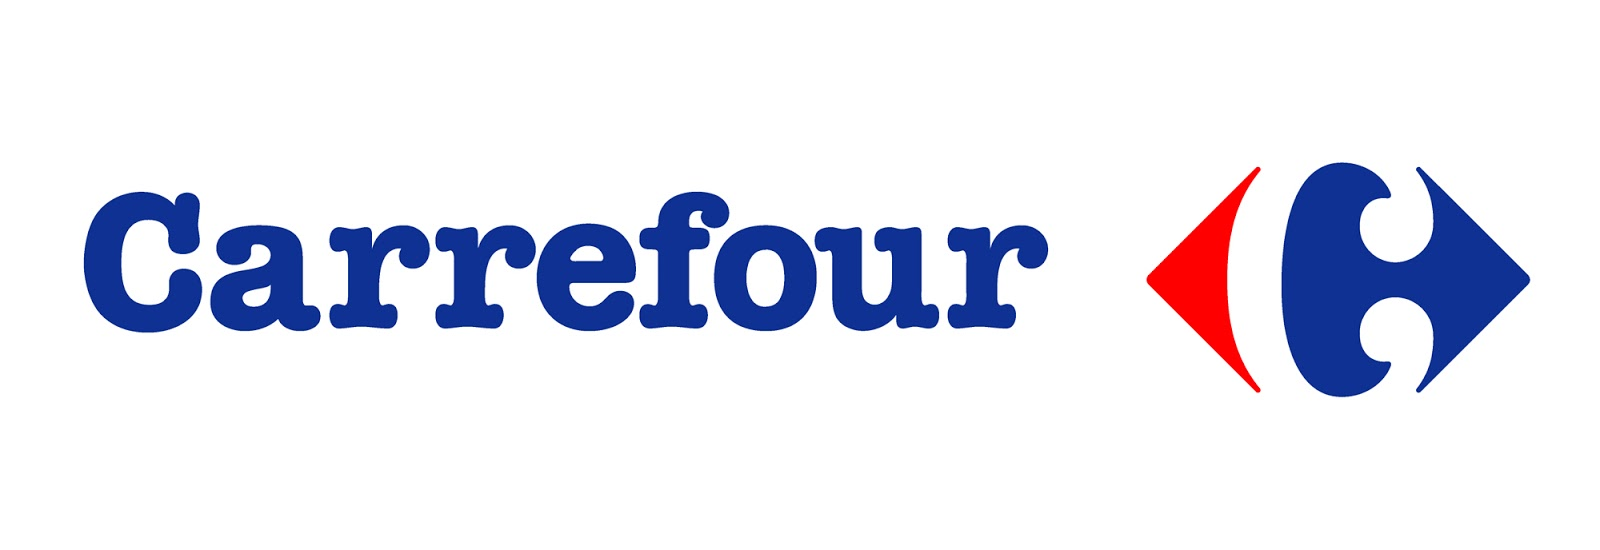 Brand name carrefour - Carrefour head office uae ...